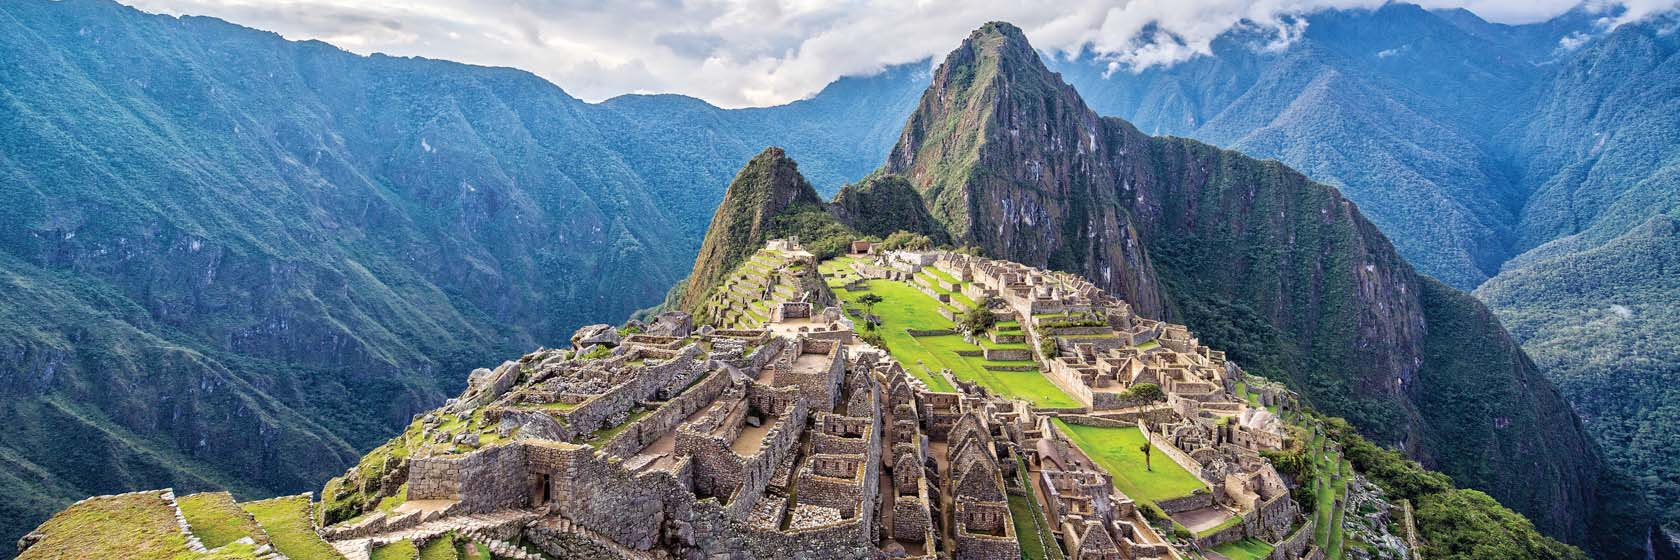 Machu Picchu & The Sacred Valley, 8 Days Lima Return with A&K